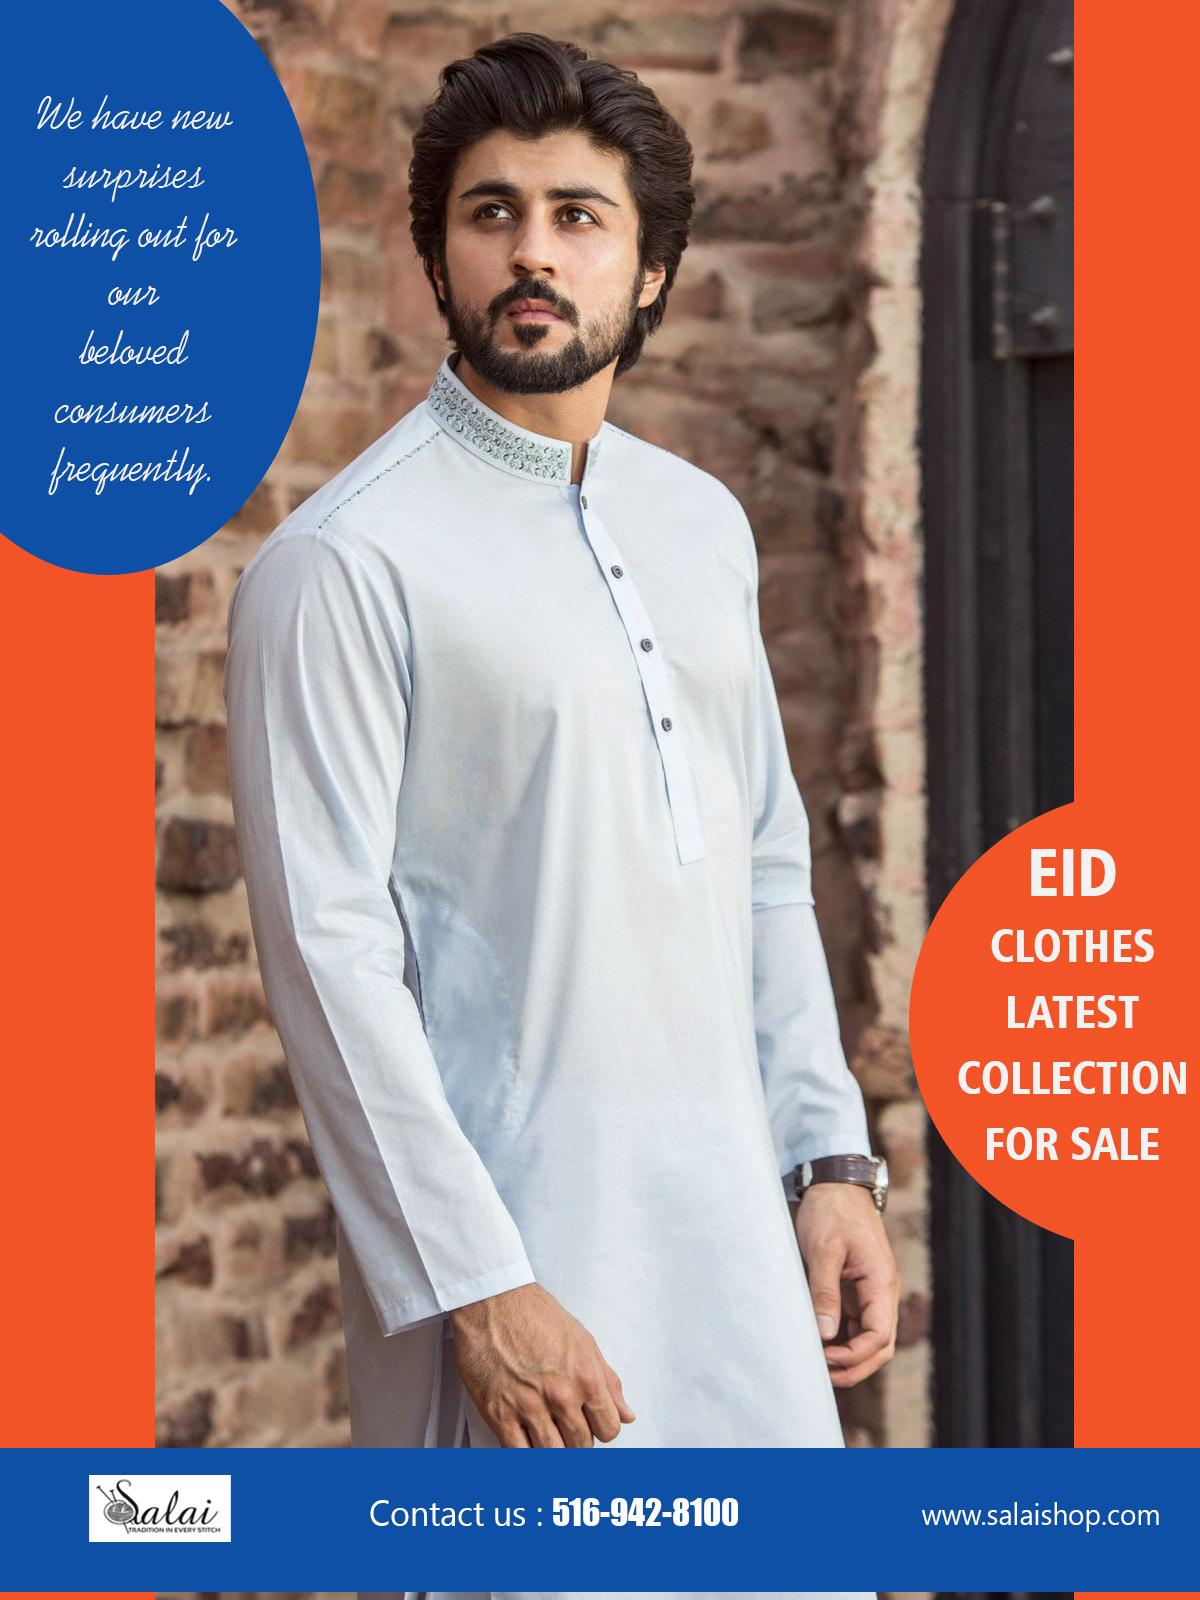 Eid Clothes latest collection for sale | https://salaishop.com/